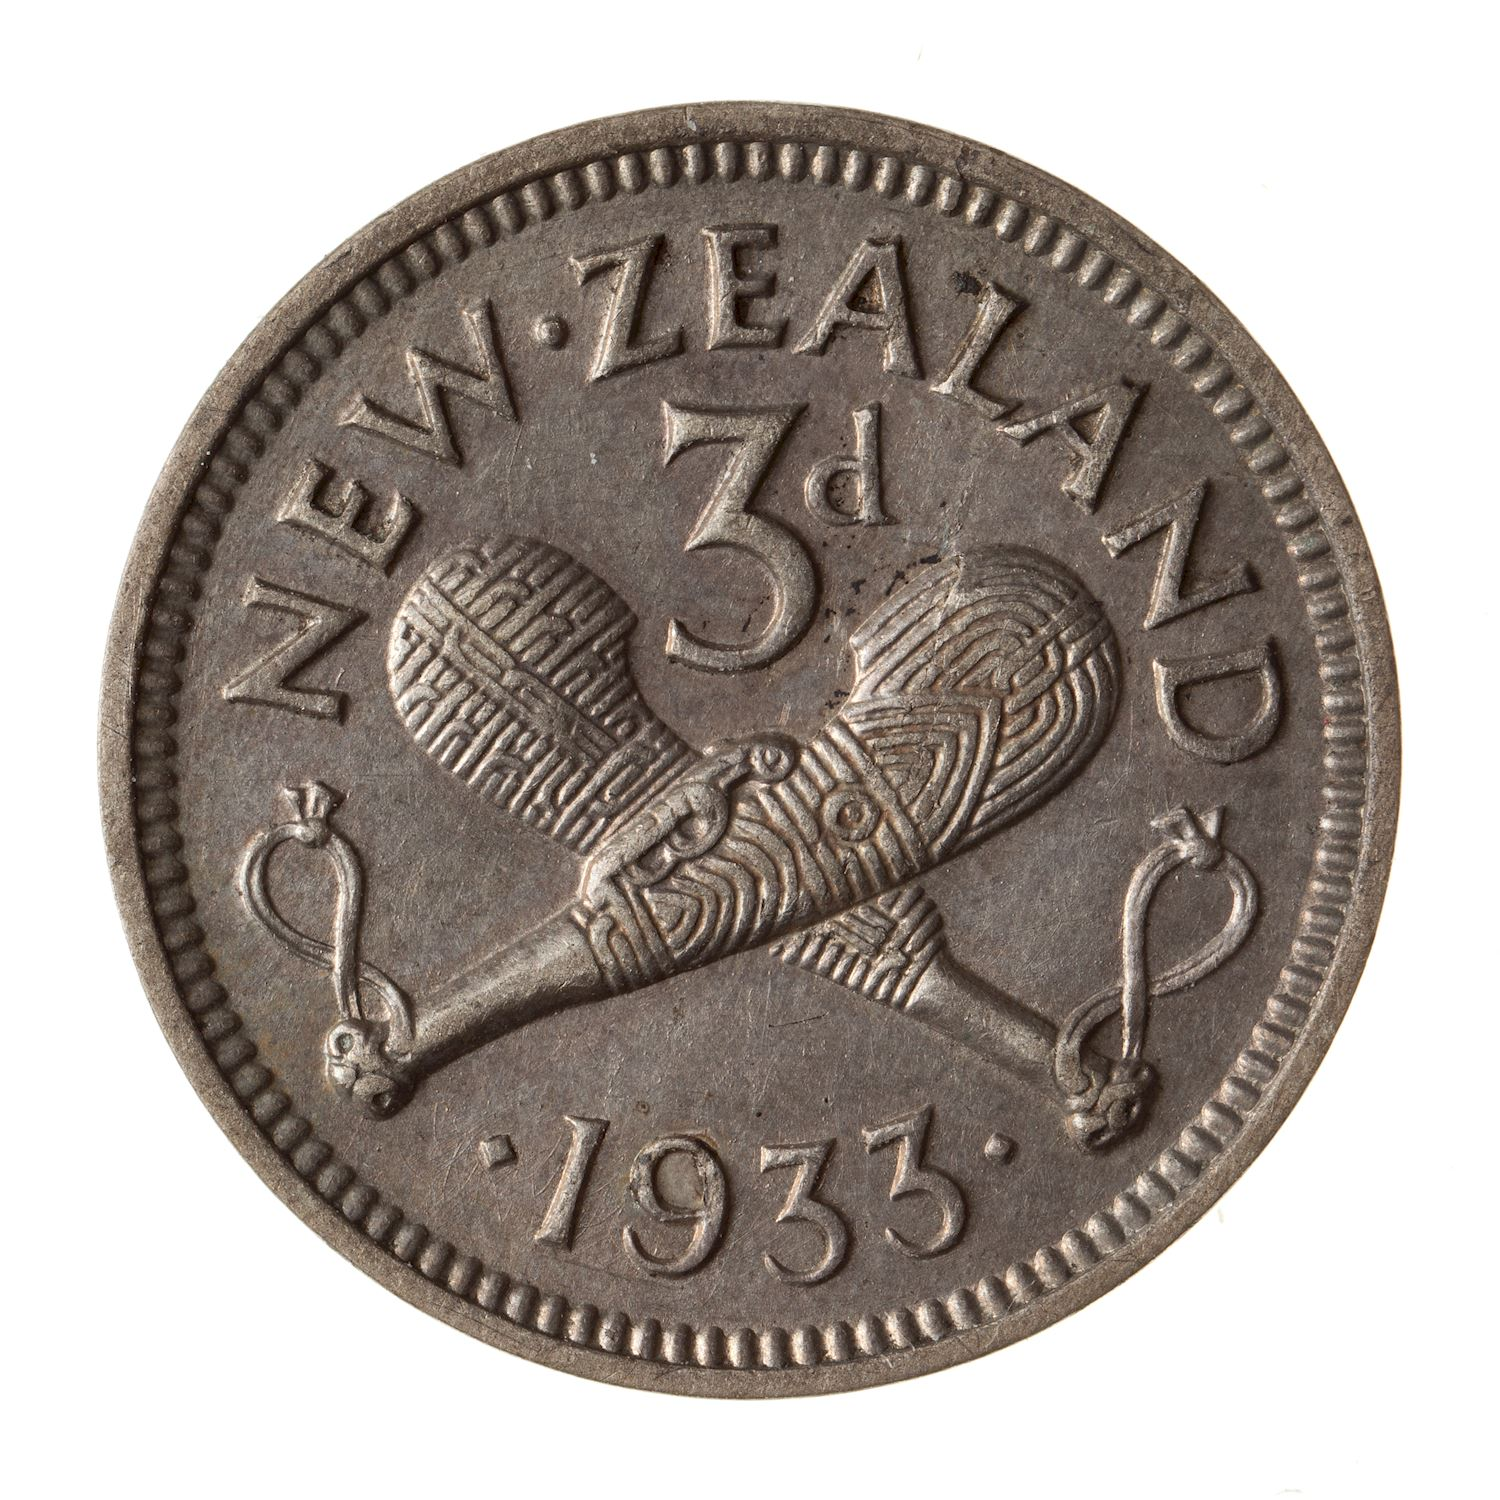 Threepence: Photo Coin - 3 Pence, New Zealand, 1933